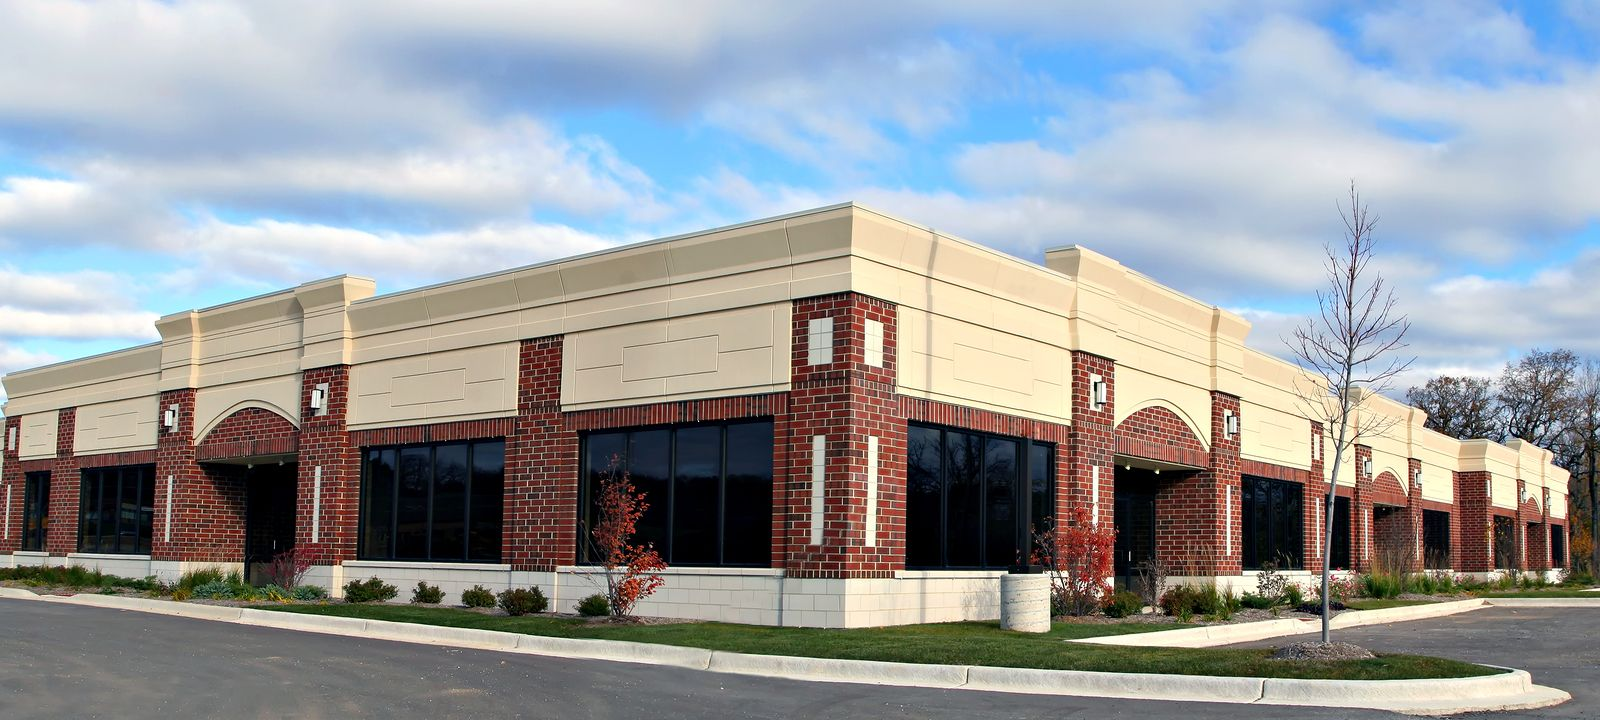 Single Story Office Building Designs Our Lease Is Expiring We Need New Offices And More Space What Can Commercial Property Building Property